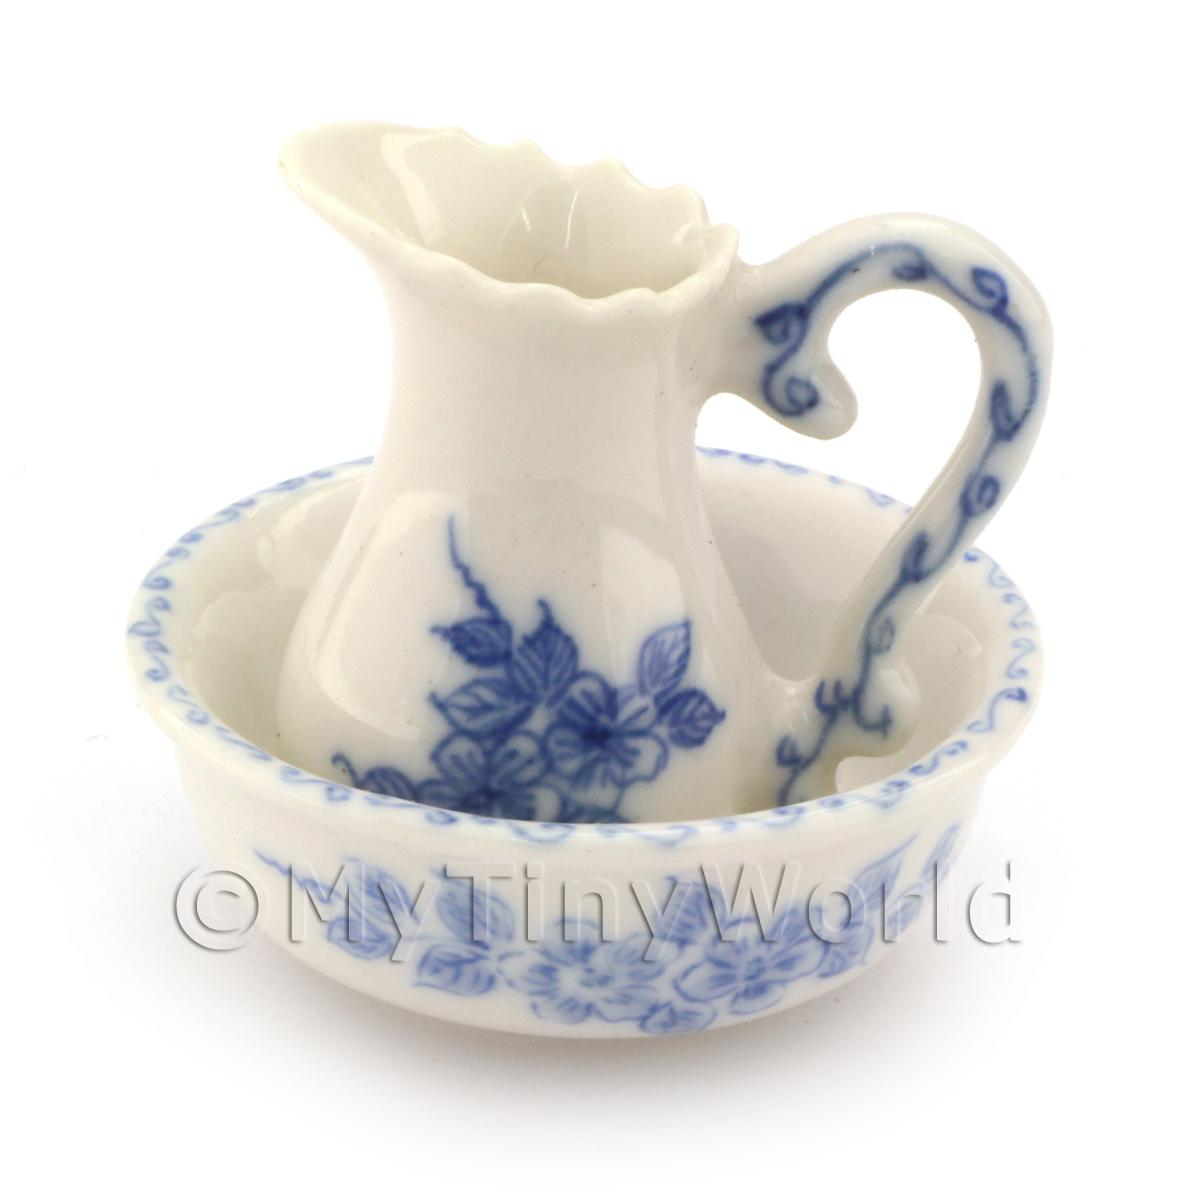 Dolls House Miniature Handmade Victorian Jug and Wash Bowl